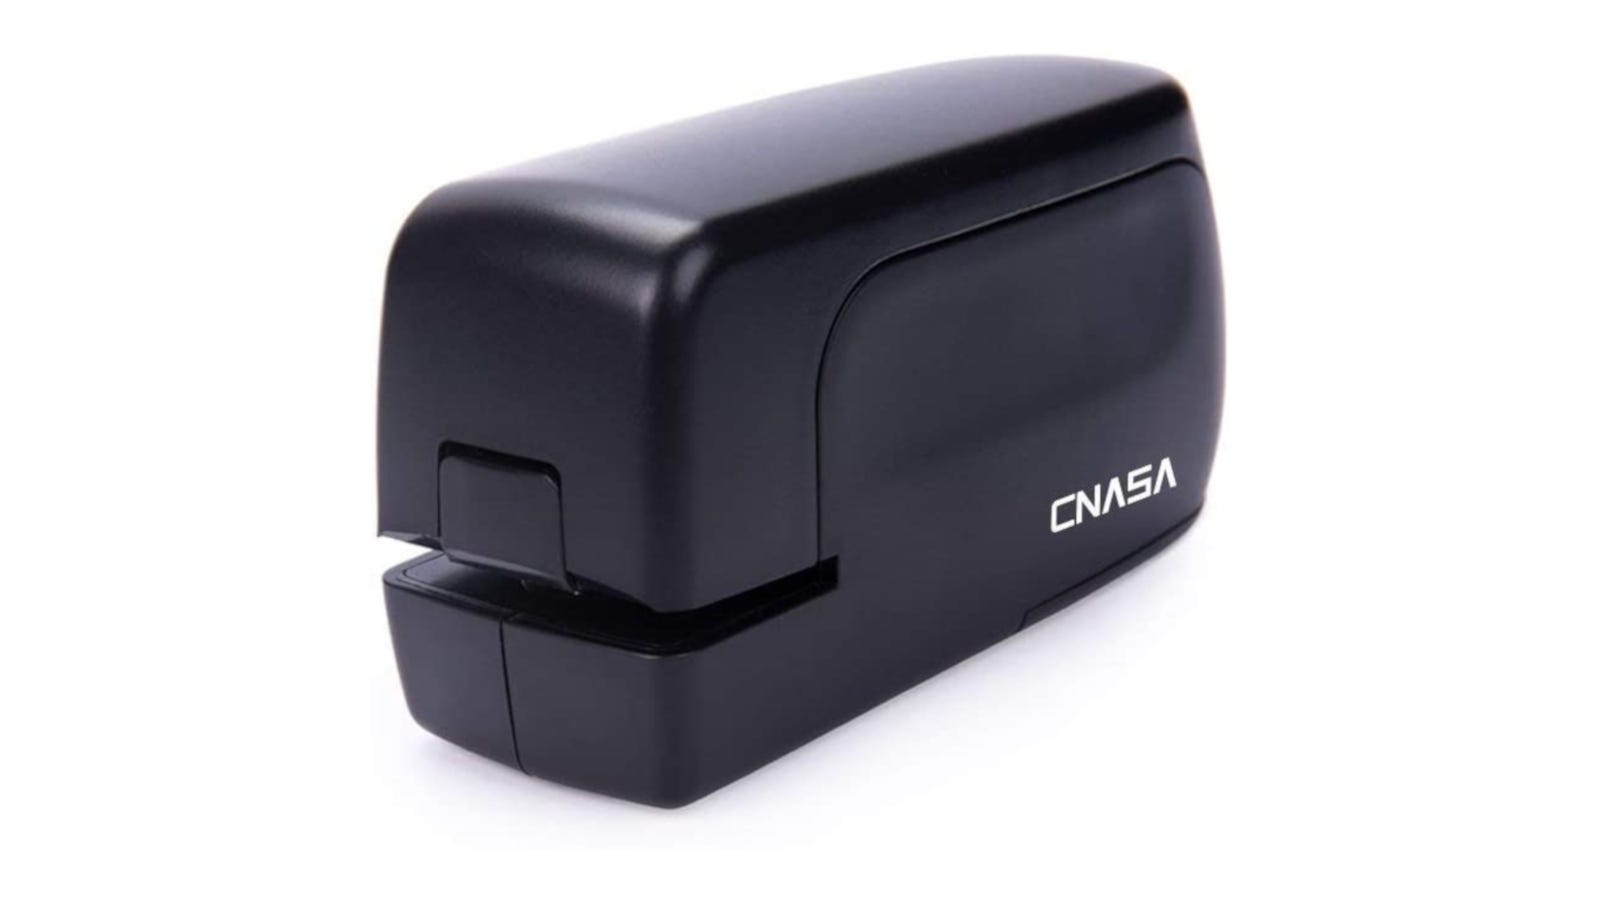 A black compact electric stapler with an AC adapter.